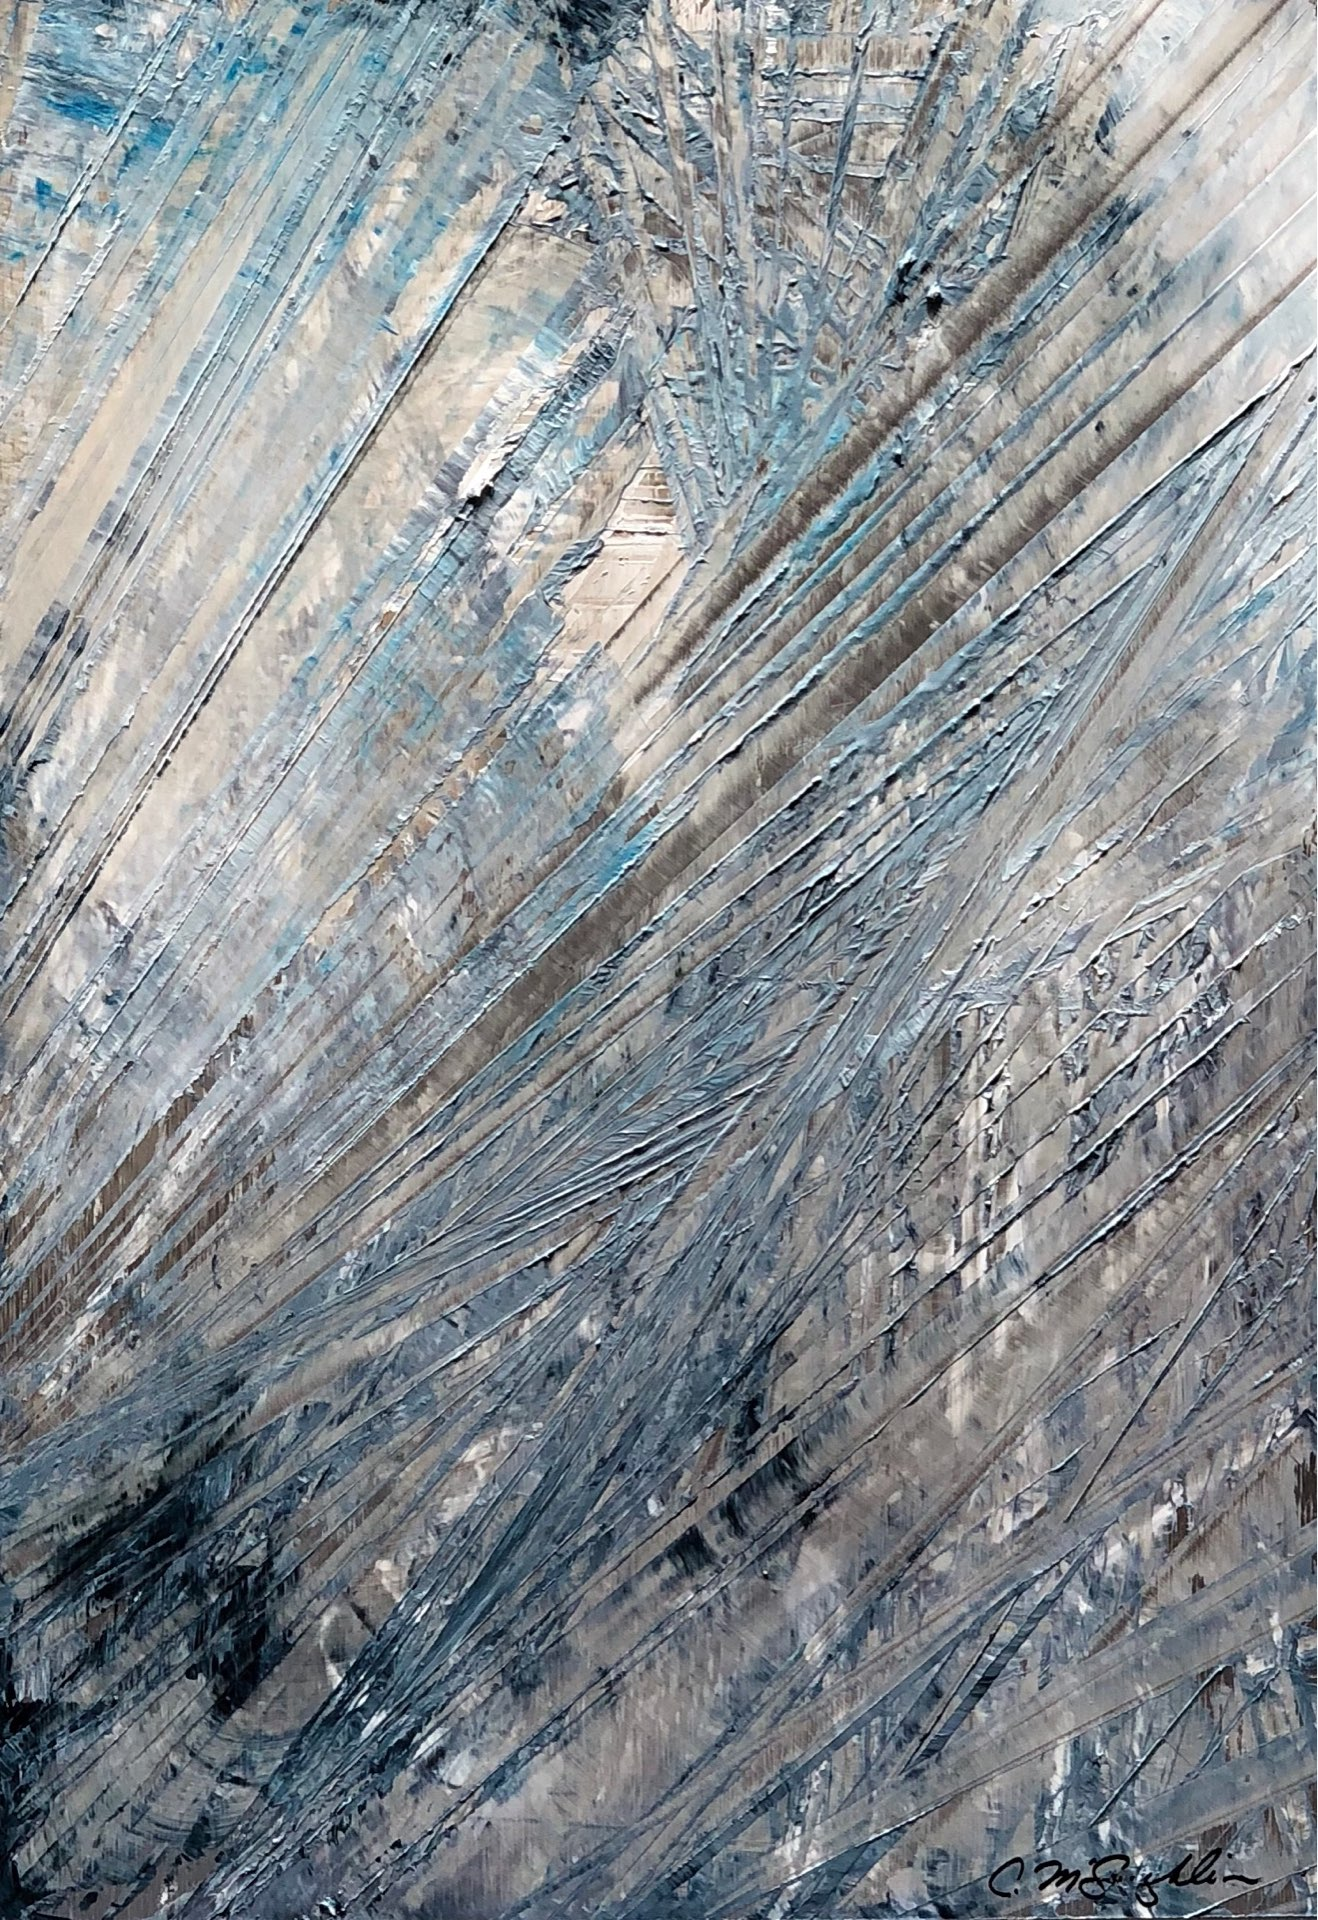 Grounded, Contemporary oil painting on metal, abstract hatch marks show through smoky, reflective silver/grey, Fine Art by Cynthia McLoughlin